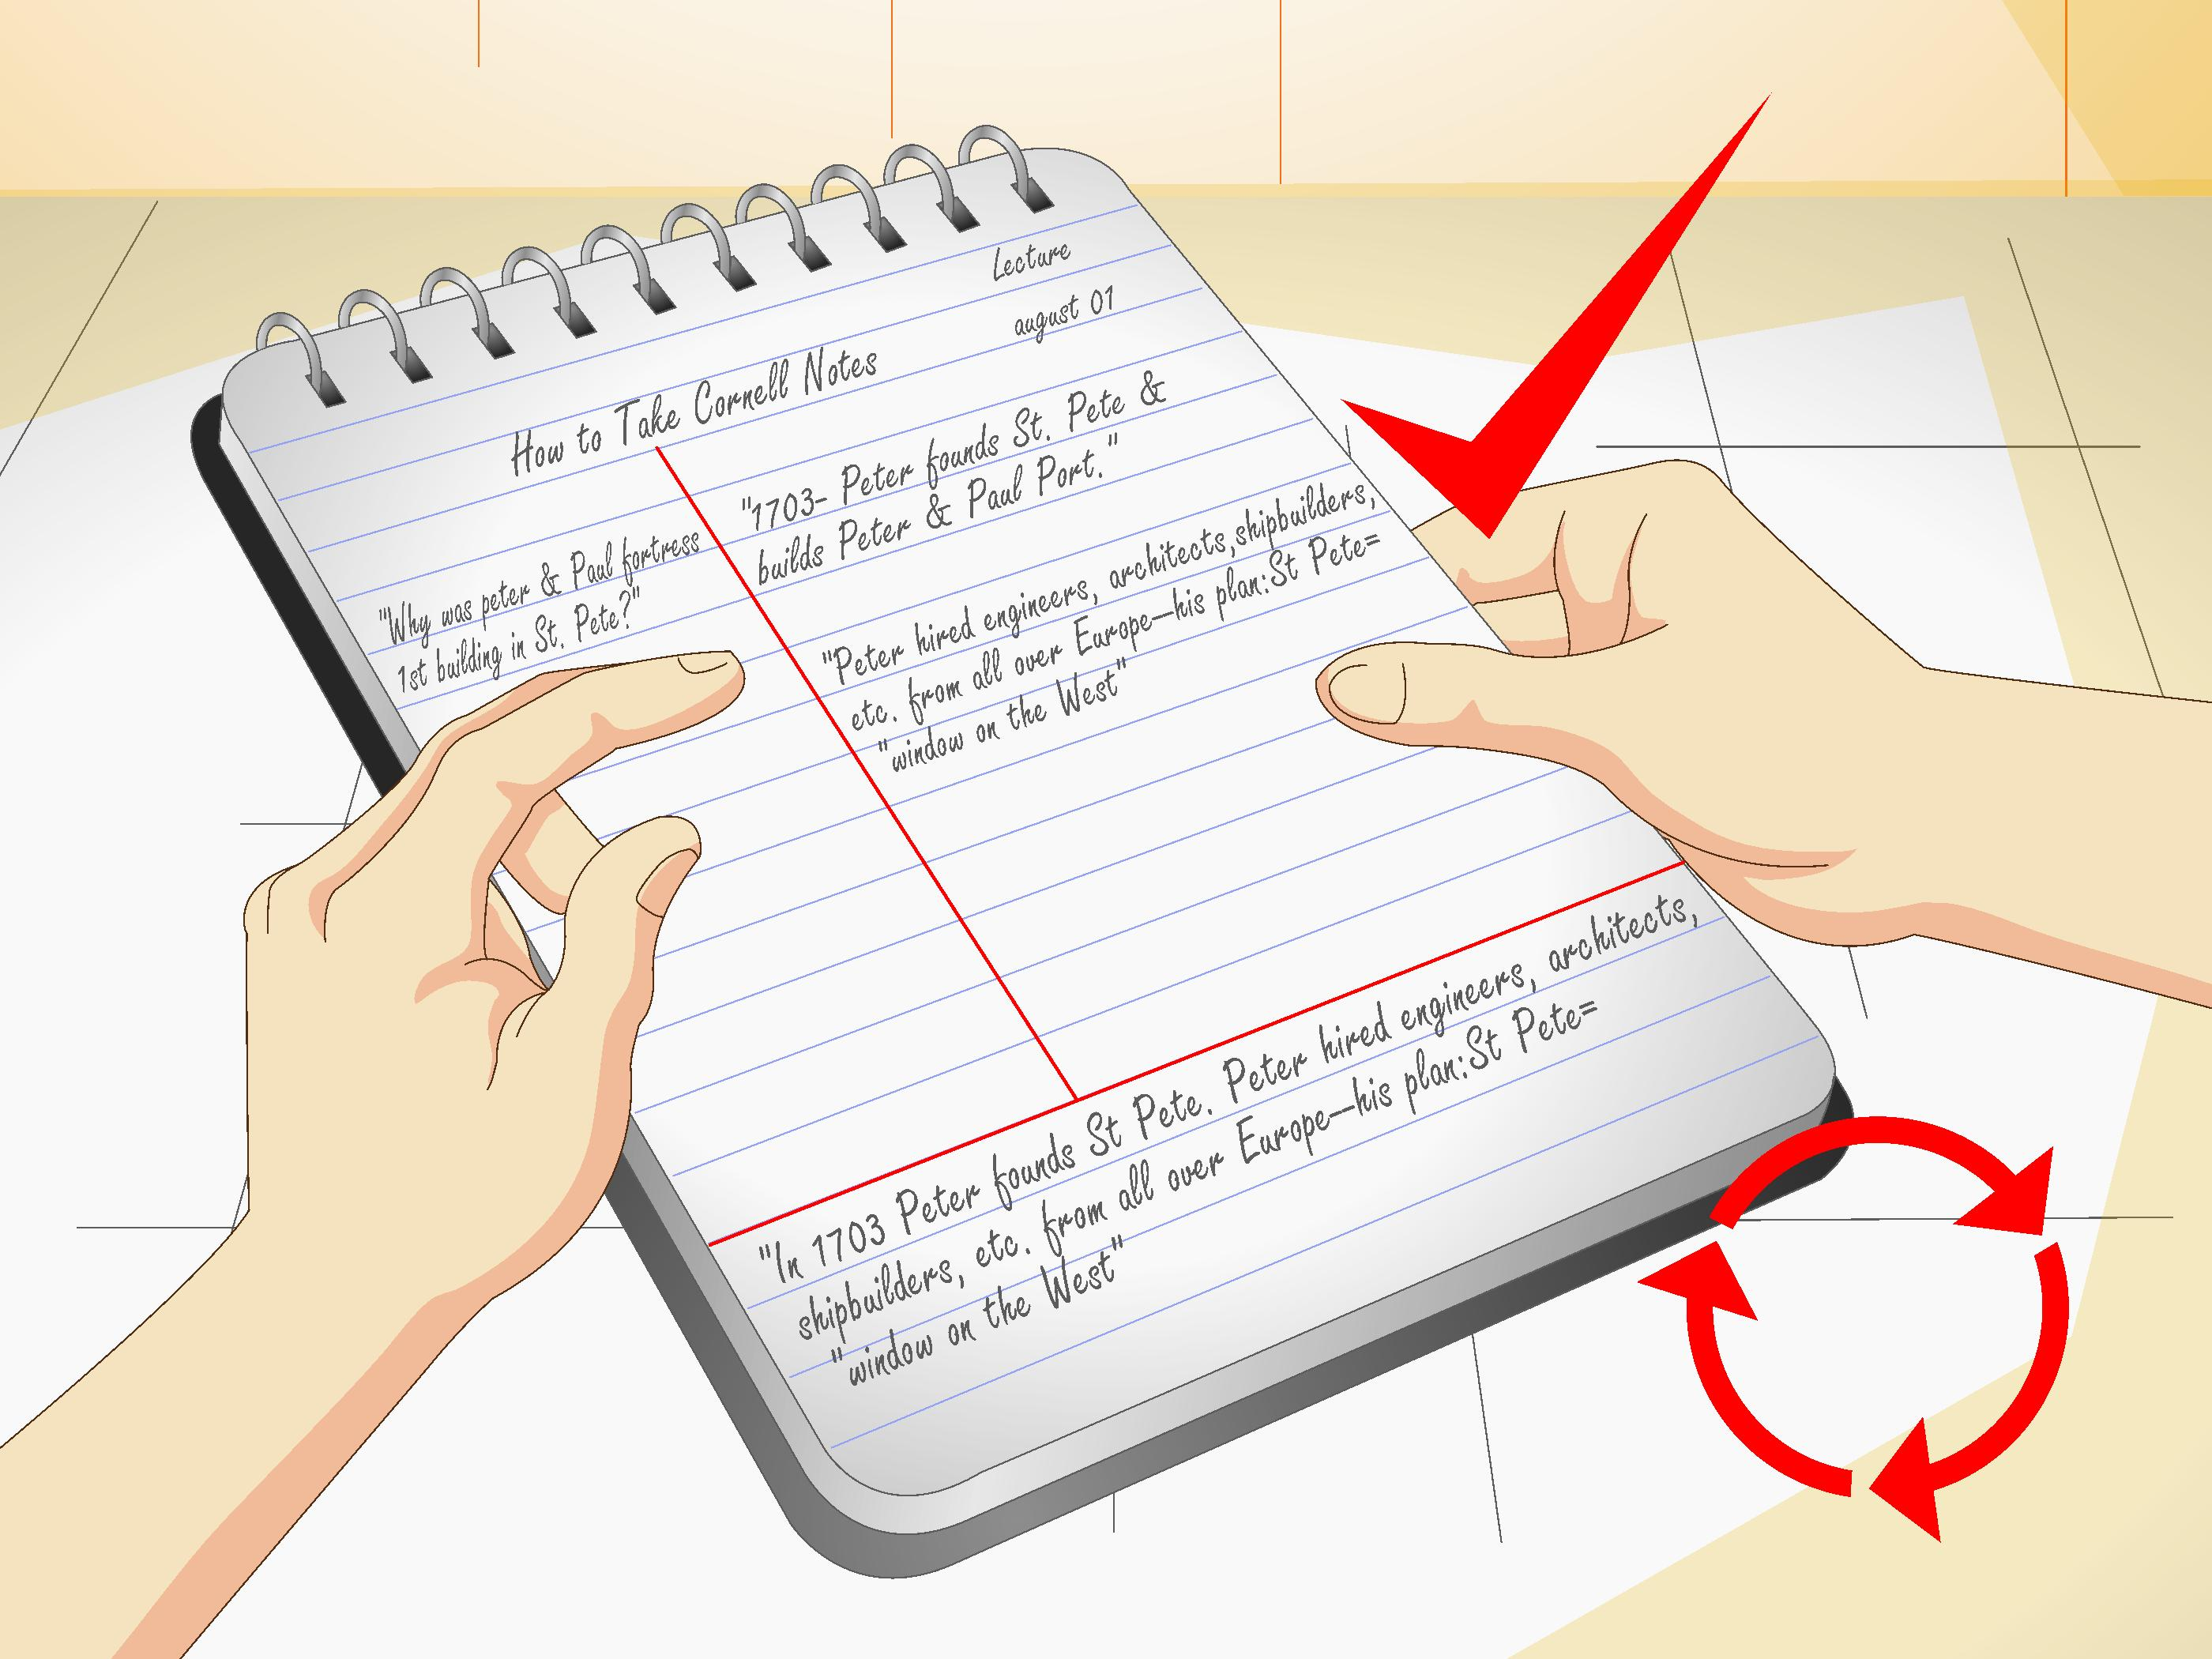 How To Take Cornell Notes With Pictures